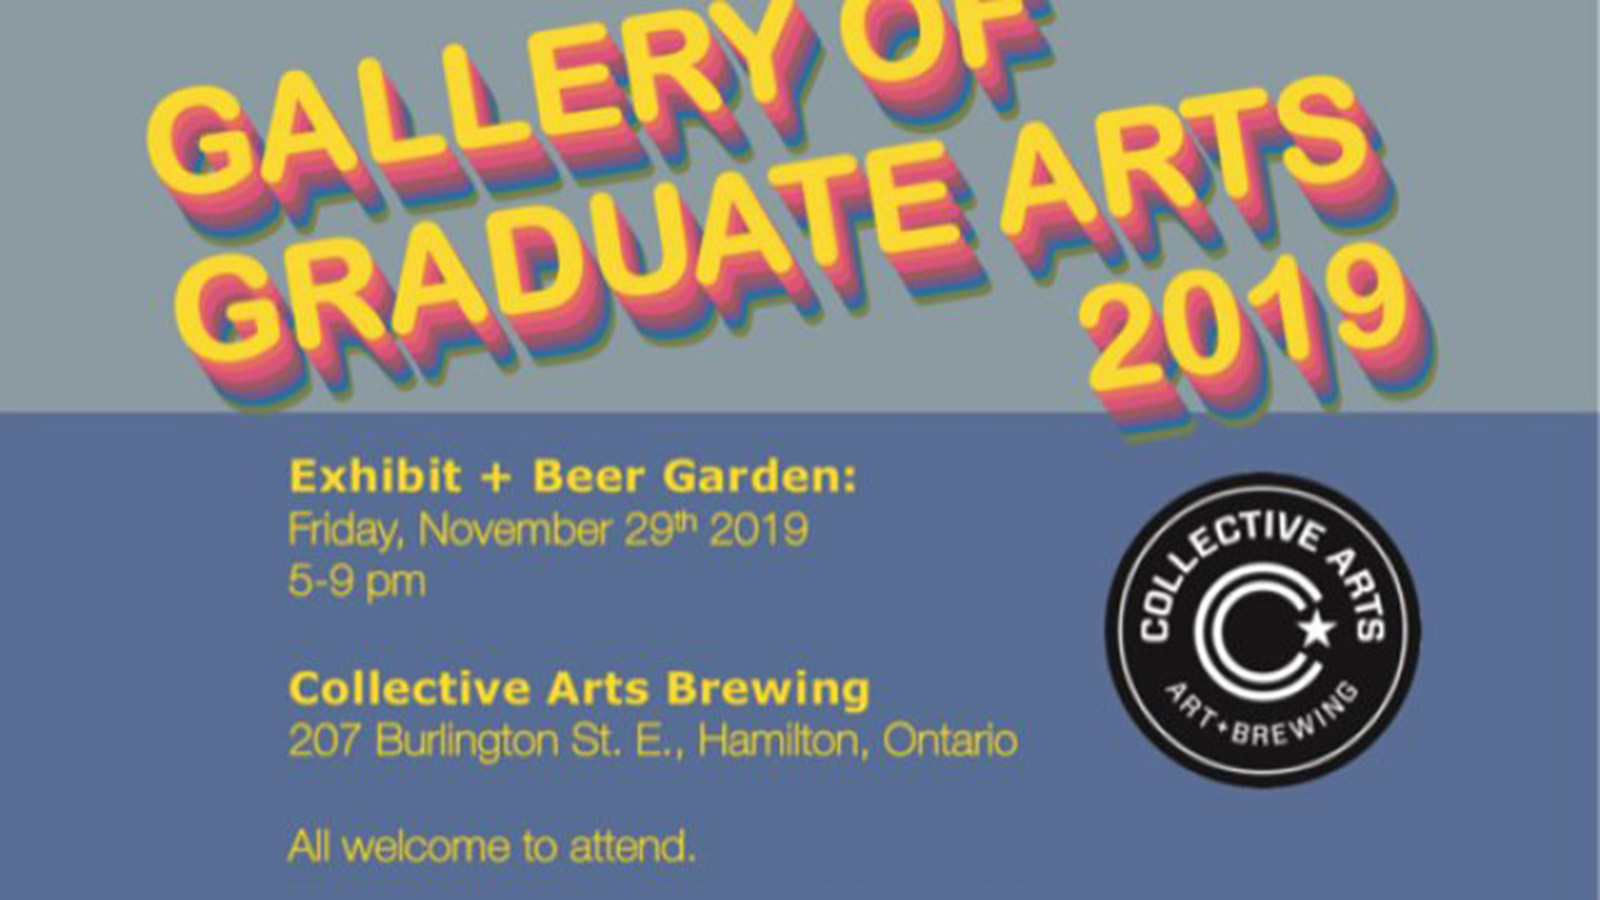 Gallery of grad art poster